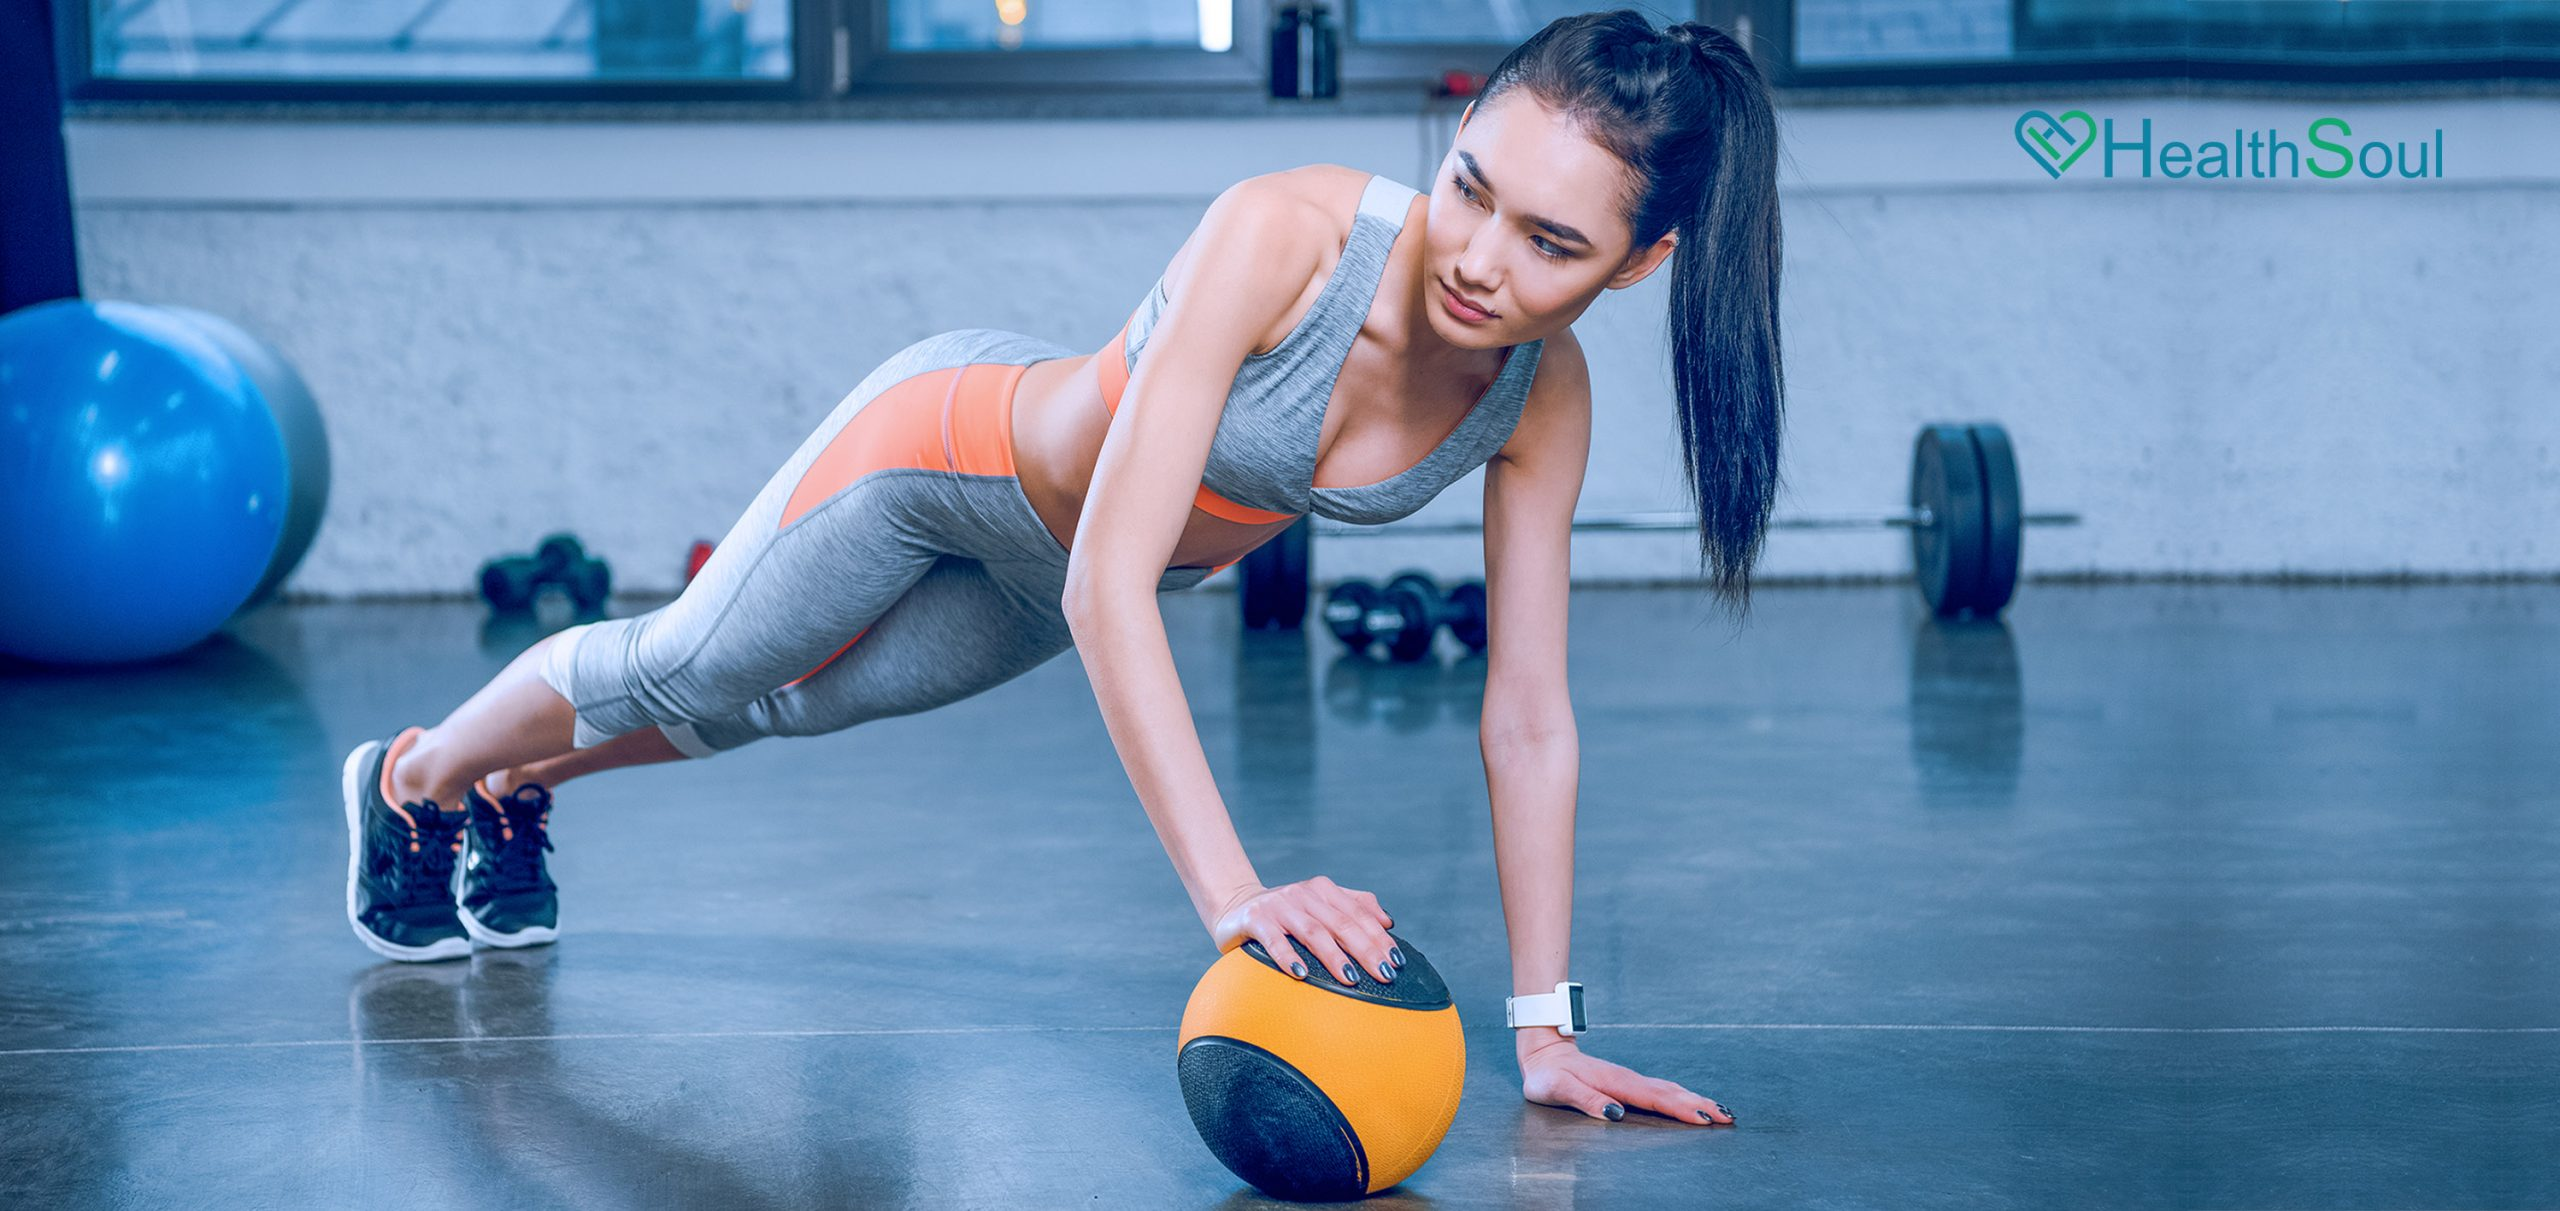 Hand Exercises for Improved Strength and Flexibility | HealthSoul